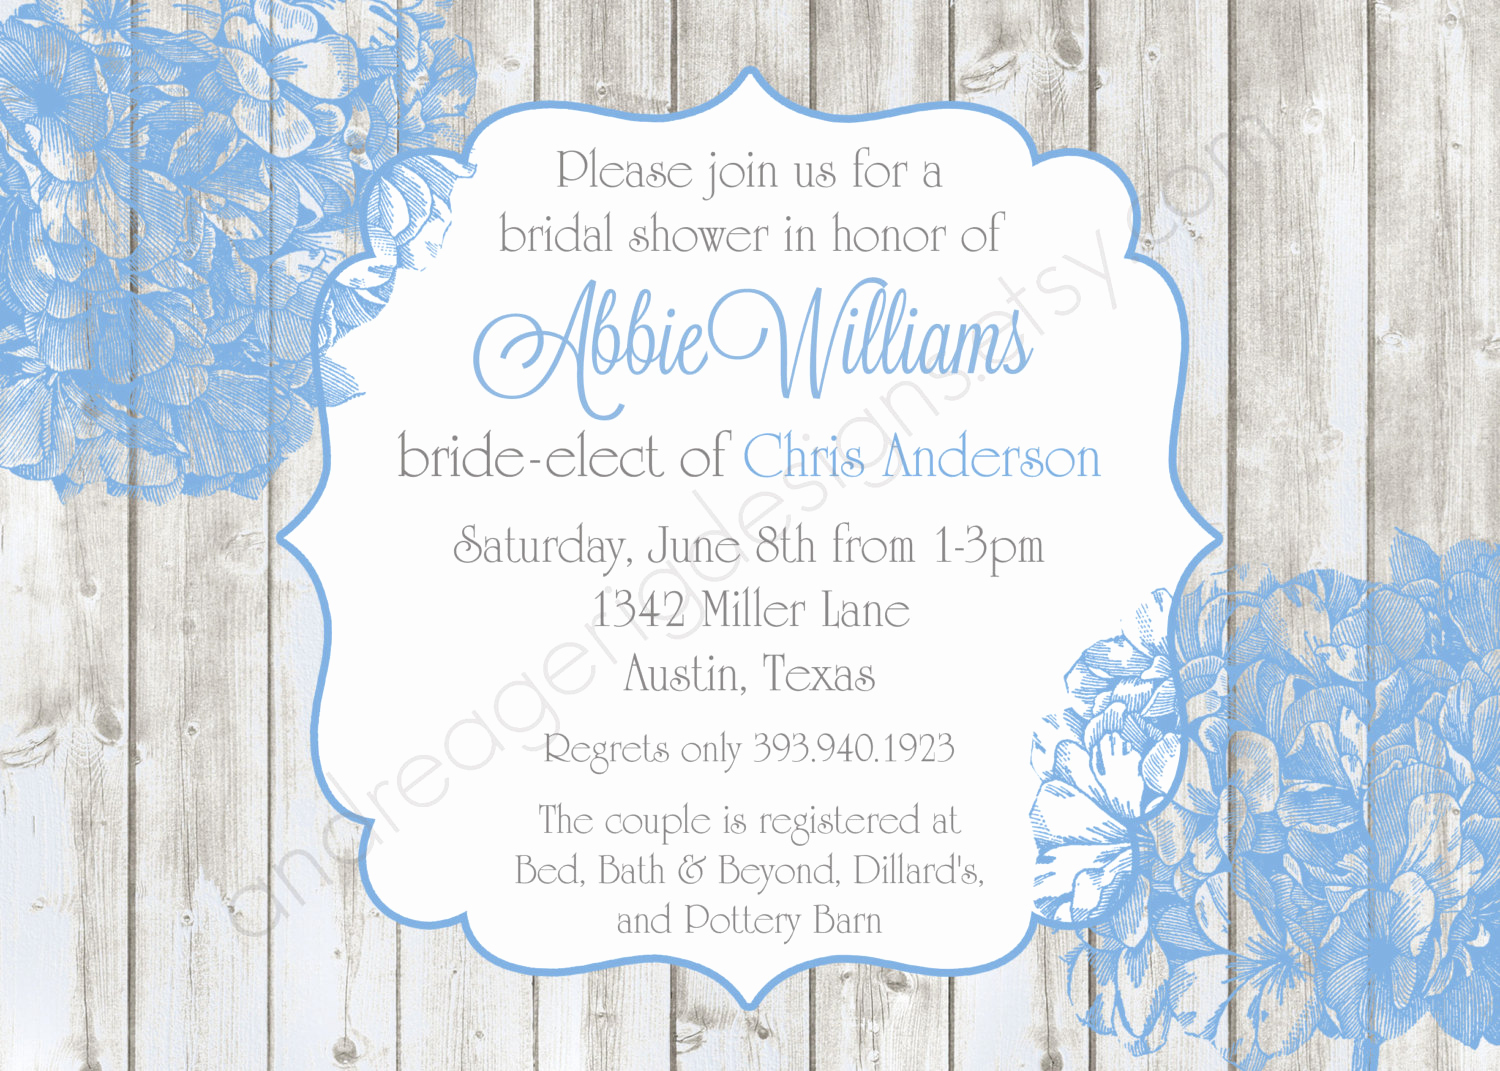 Printable Bridal Shower Invitation Templates Beautiful Free Printable Wedding Shower Invitations Templates